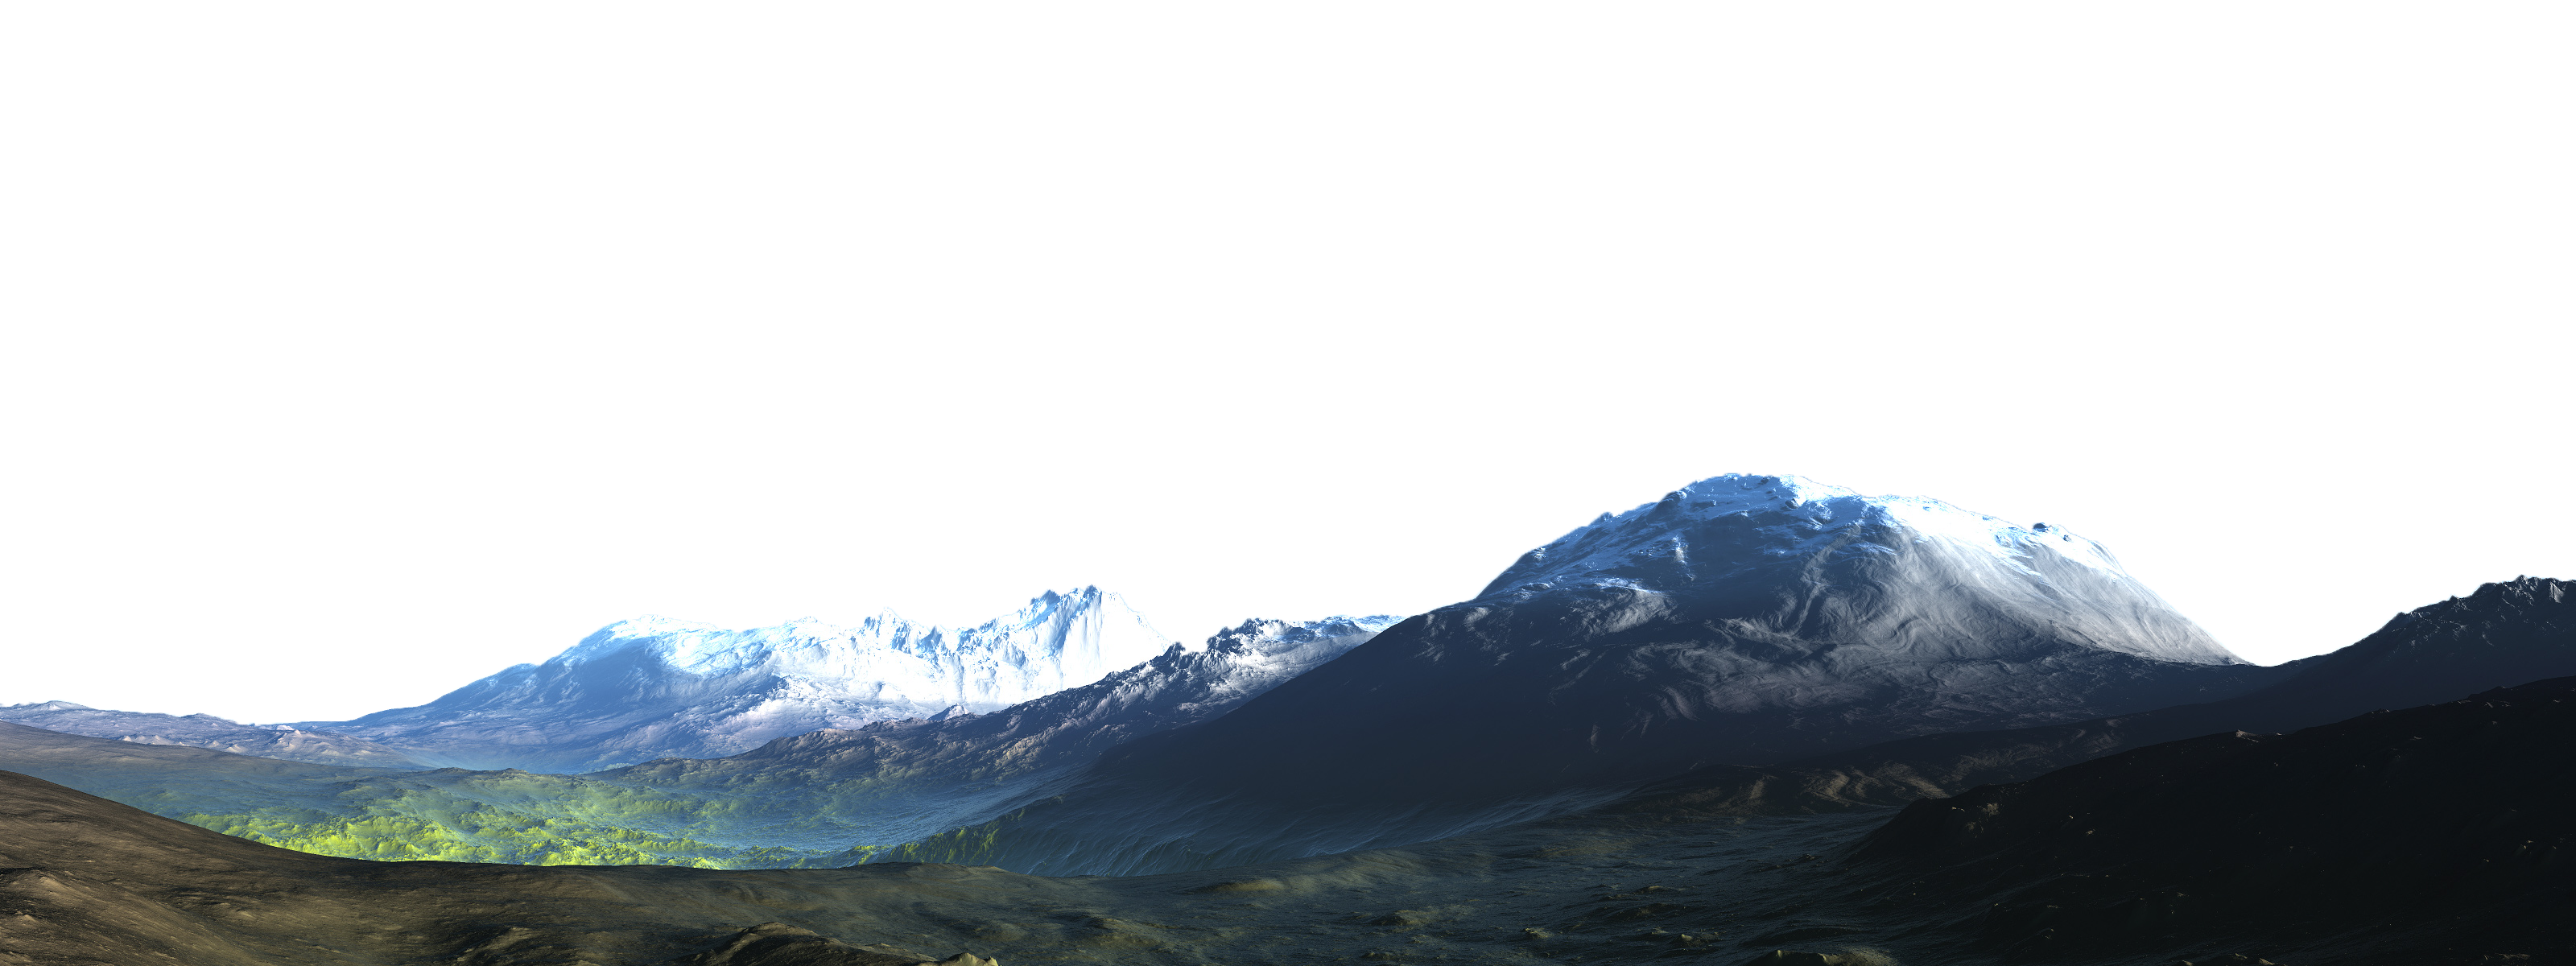 Hills clipart ground. Mountain png transparent images